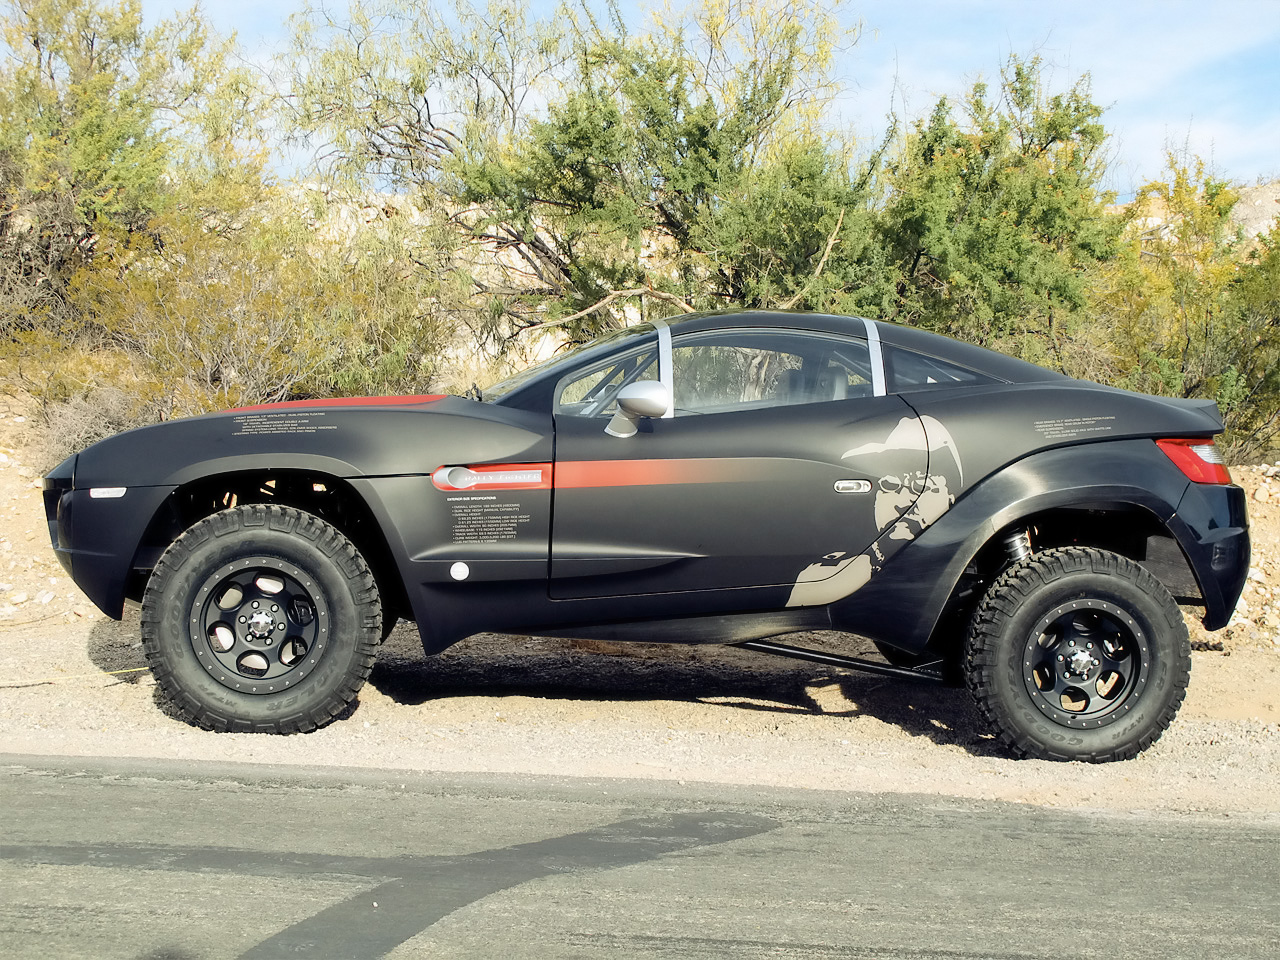 local motors rally fighter pictures and videos. Black Bedroom Furniture Sets. Home Design Ideas